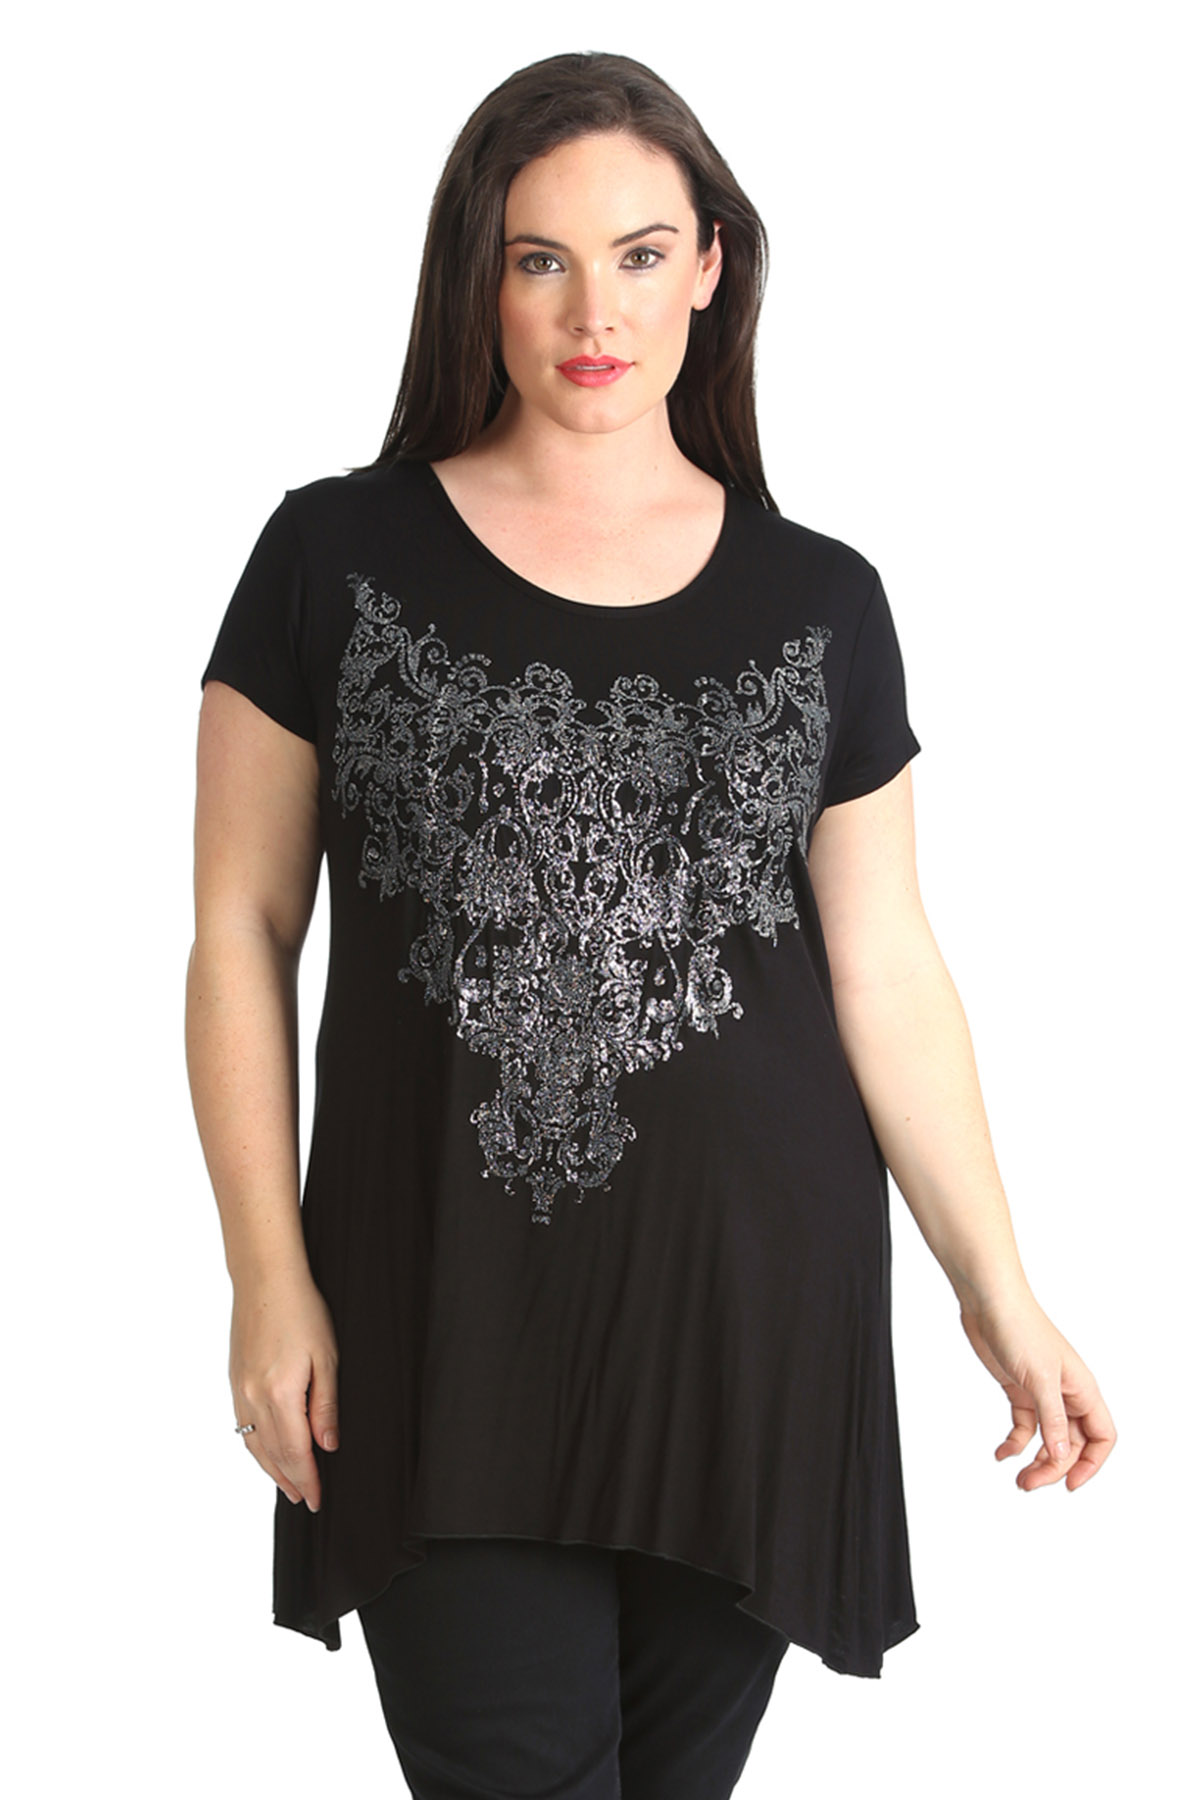 new plus size top womens t shirt beaded sequins